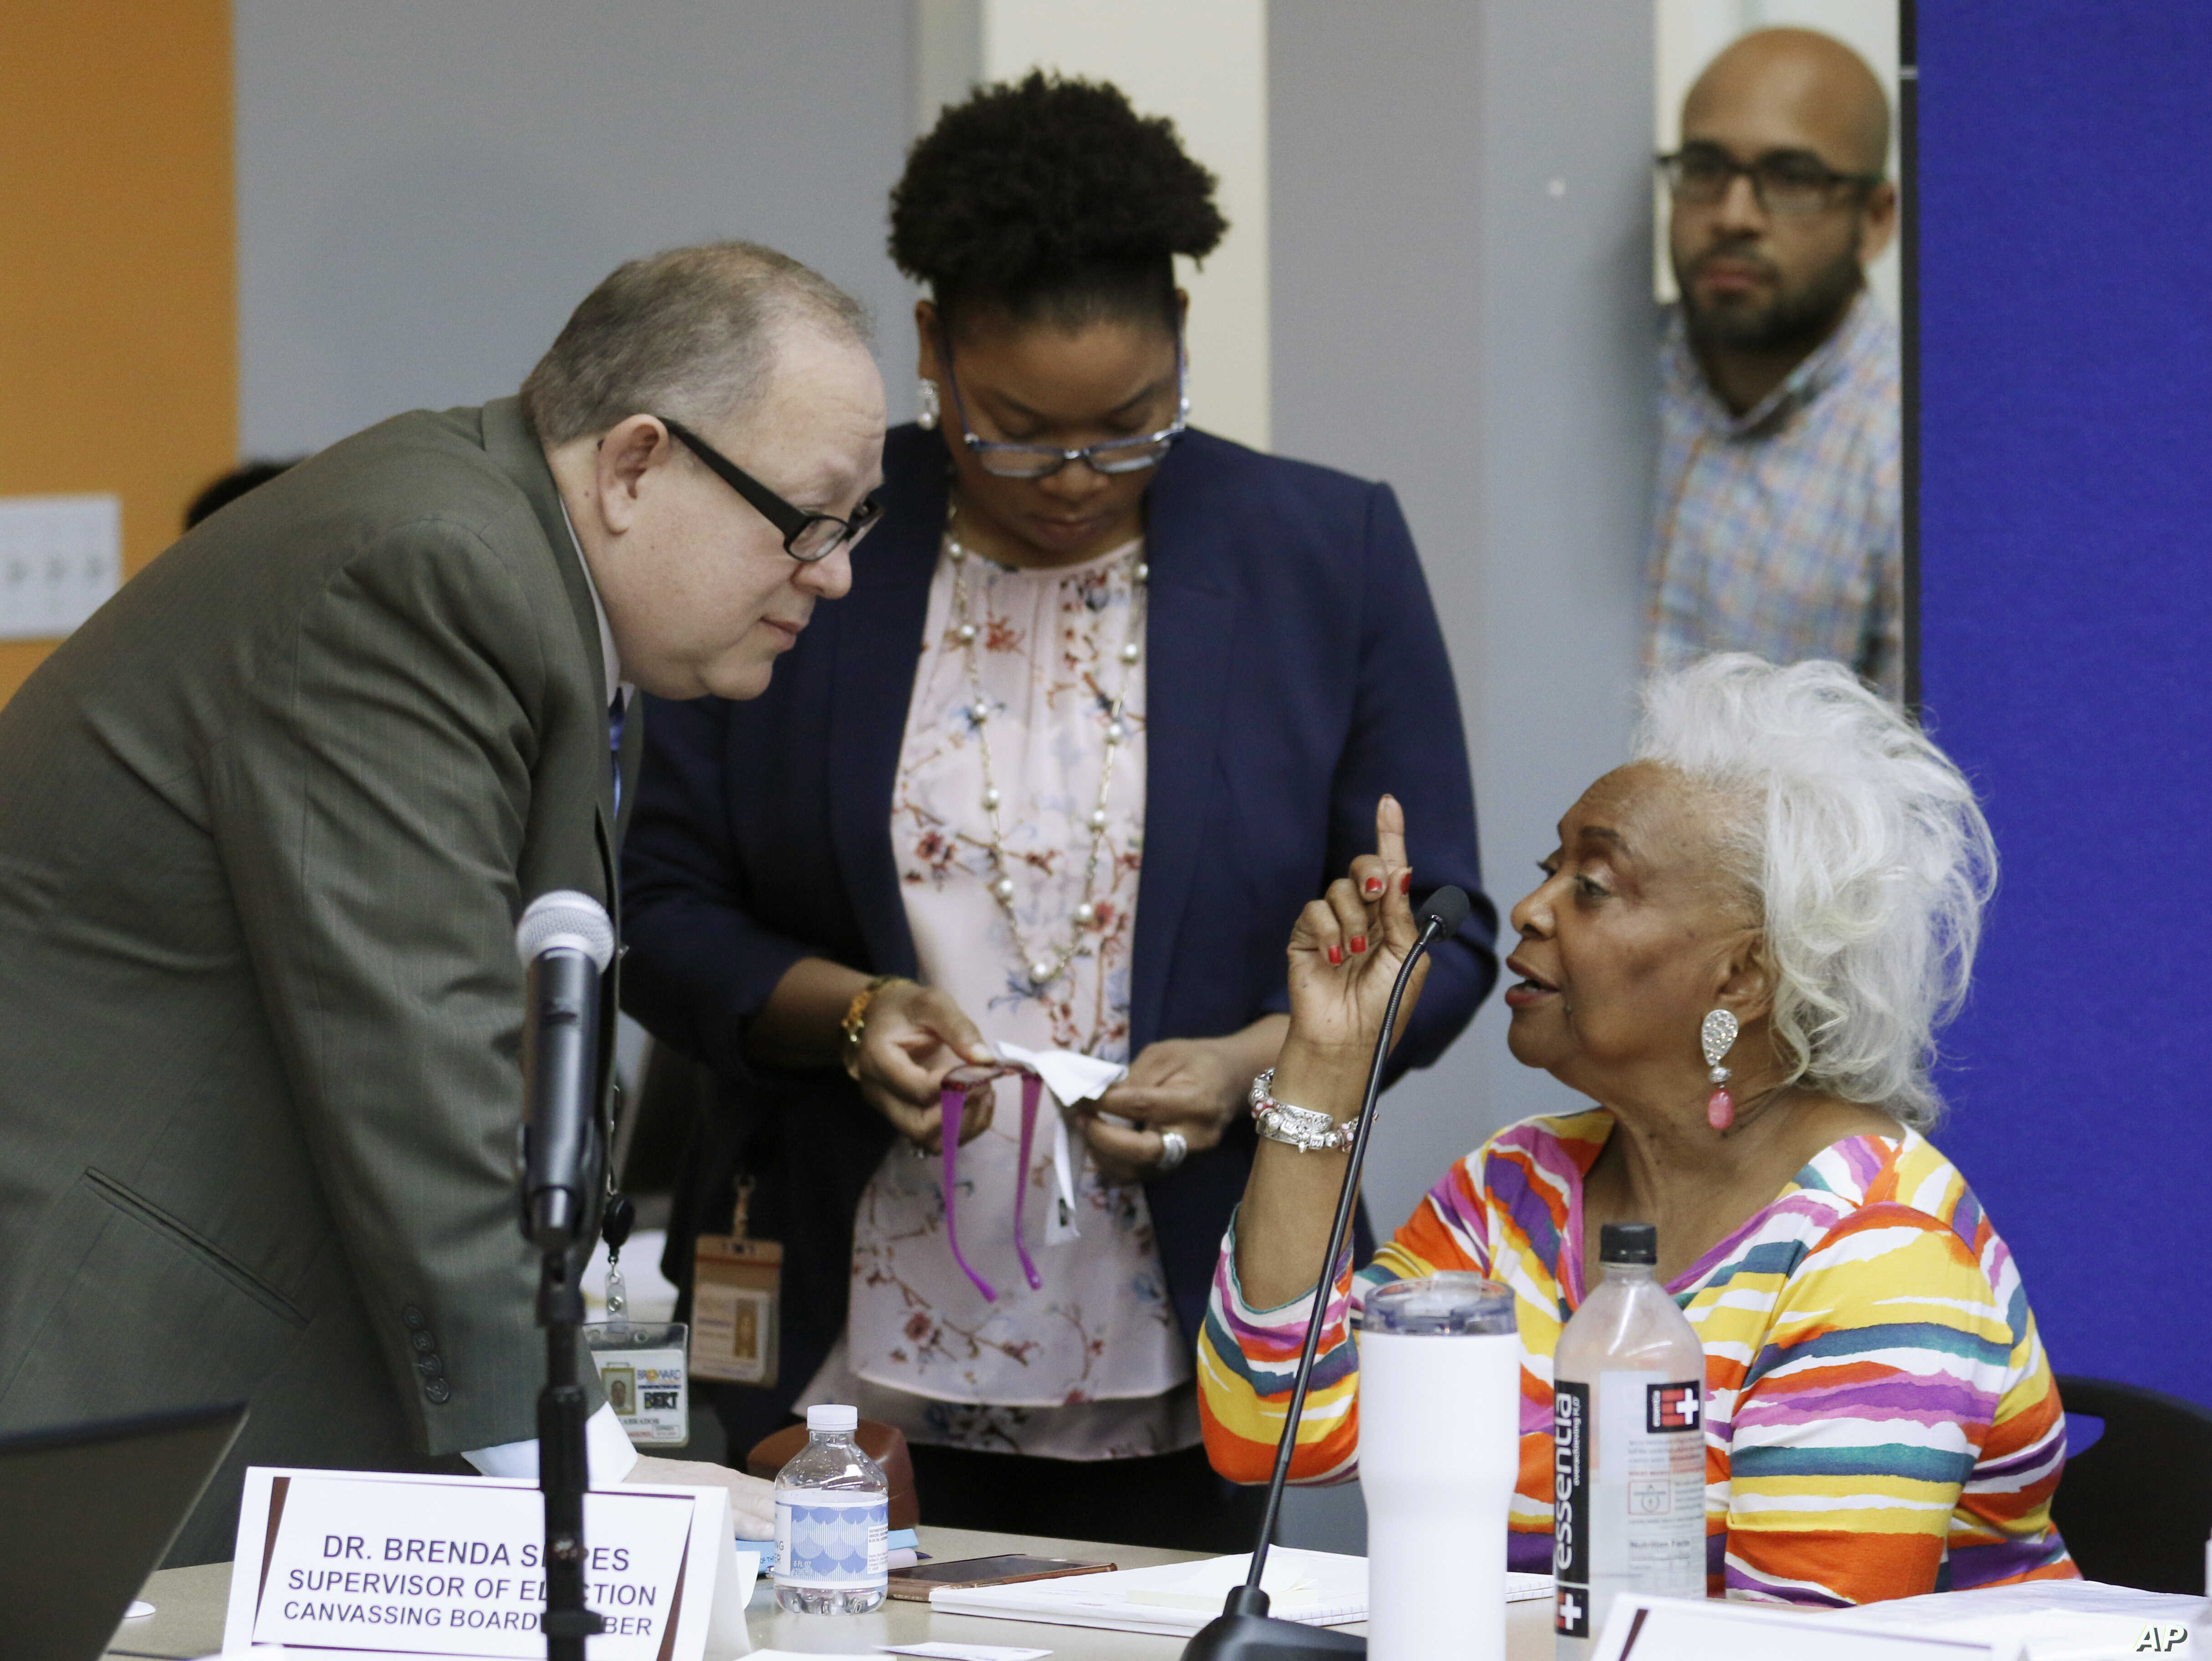 Brenda Snipes, Broward County supervisor of elections, right, speaks with officials before a canvassing board meeting Nov. 9, 2018, in Lauderhill, Fla. Florida  will learn Saturday afternoon whether there will be recounts in the U.S. Senate race betw...